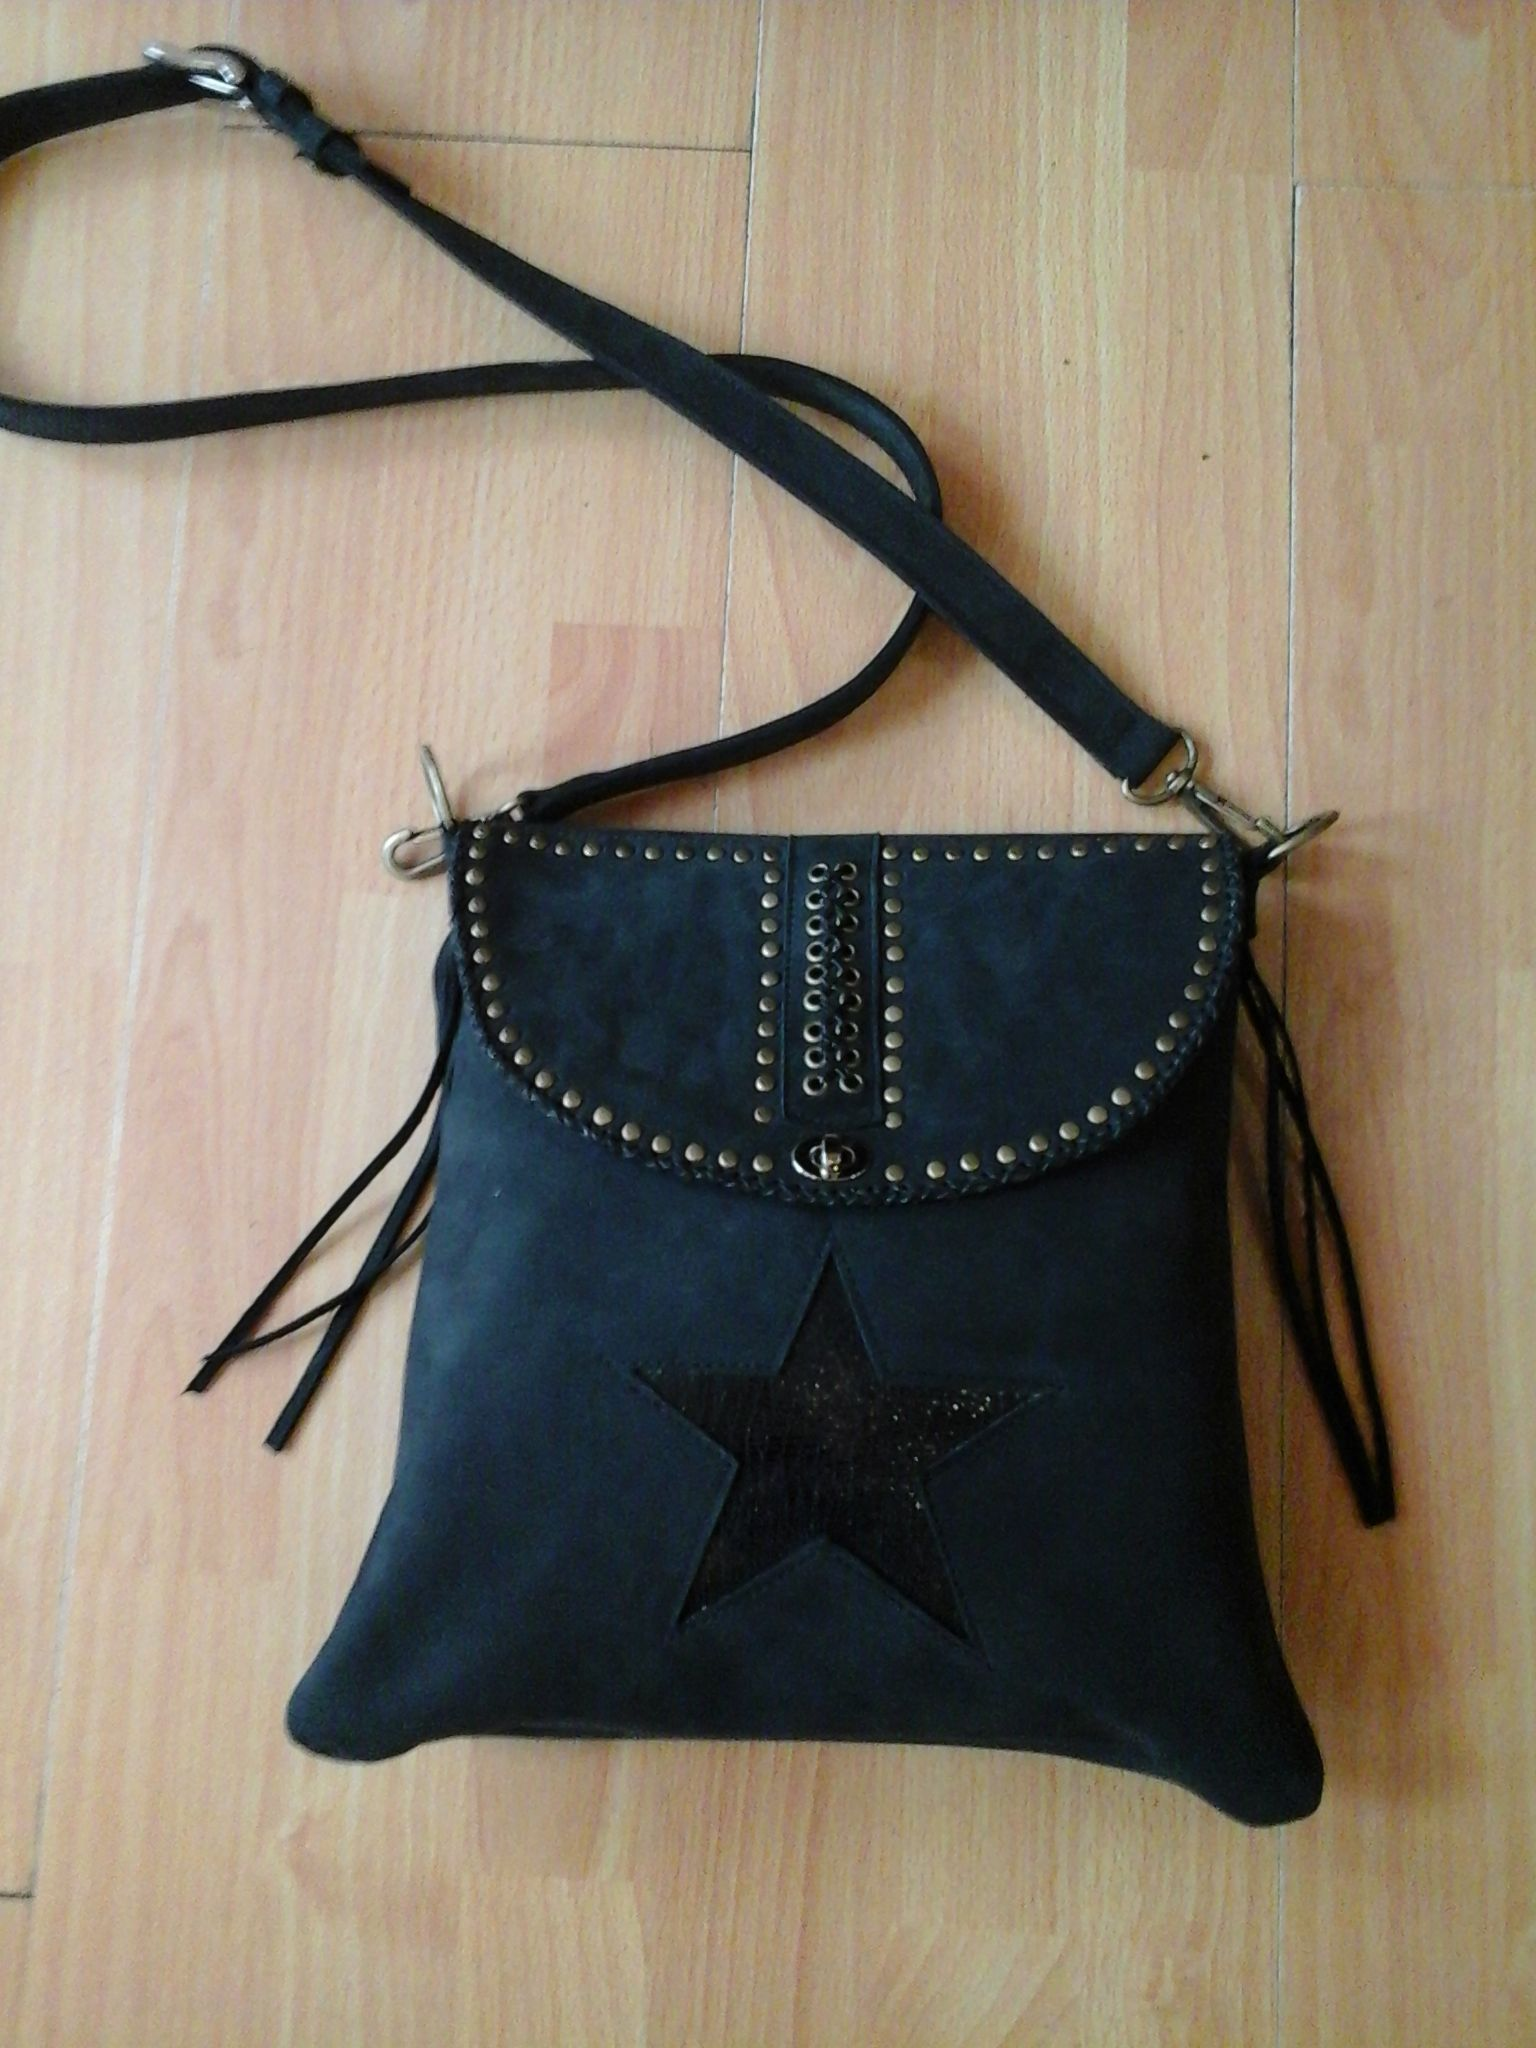 Crossbody leather black bag. Hand made by Muxus Cartera